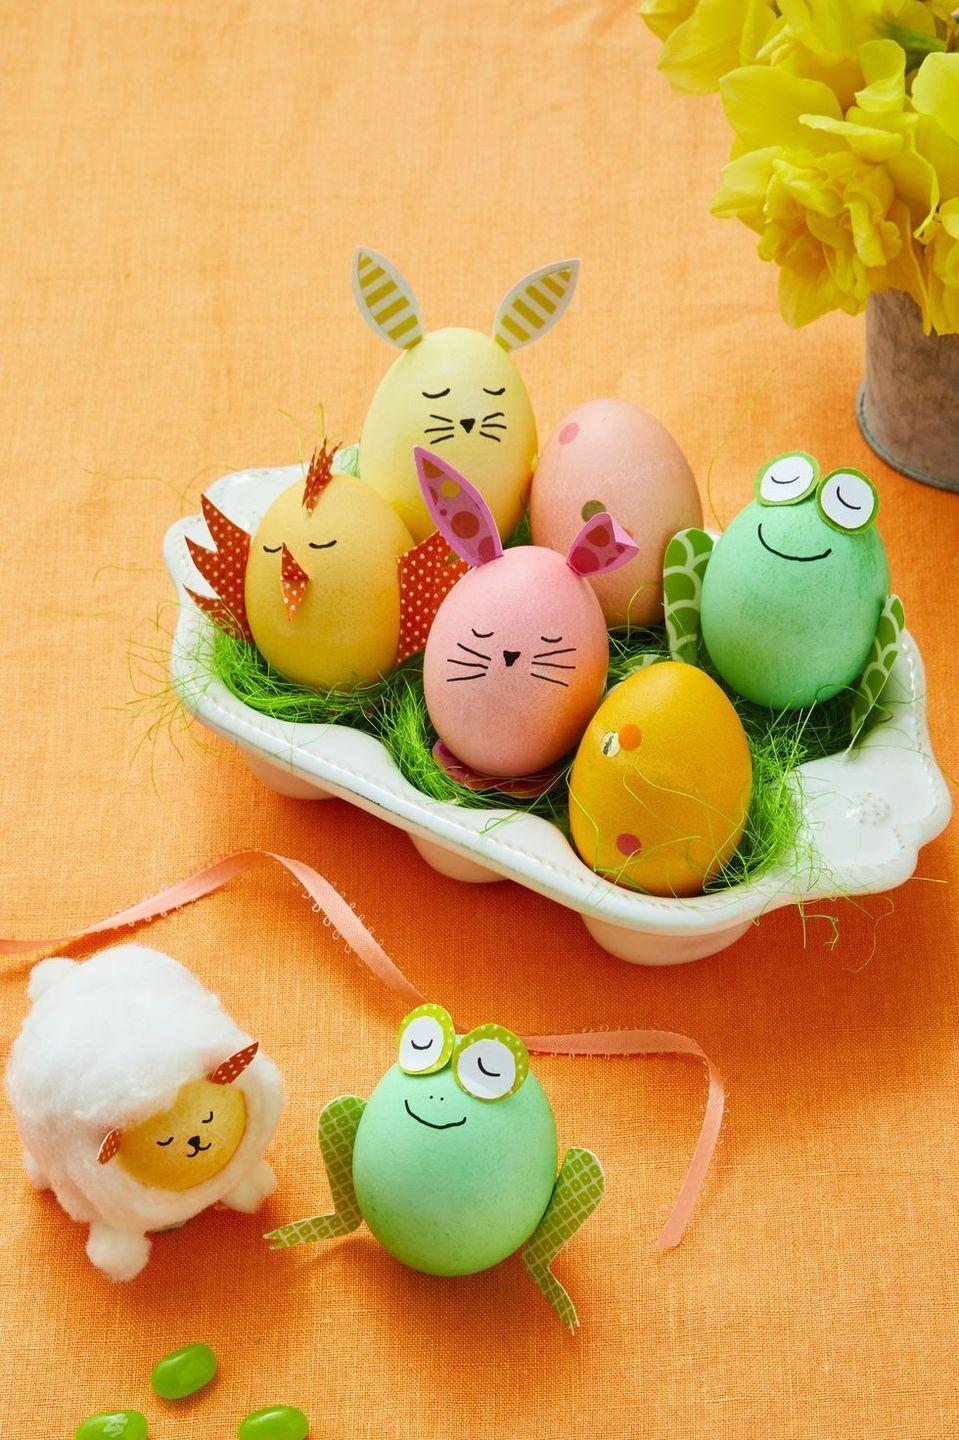 """<p>In need of an Easter brunch centerpiece? Grab the kids and have them help you make this adorable ensemble.</p><p><strong><a href=""""https://www.womansday.com/home/crafts-projects/g2216/easter-eggs/?slide=1"""" rel=""""nofollow noopener"""" target=""""_blank"""" data-ylk=""""slk:Get the Animal Critters tutorial."""" class=""""link rapid-noclick-resp""""><em>Get the Animal Critters tutorial.</em></a></strong><strong><strong><em><a href=""""https://www.womansday.com/home/crafts-projects/a18837631/easter-egg-templates/"""" rel=""""nofollow noopener"""" target=""""_blank"""" data-ylk=""""slk:Get the templates here."""" class=""""link rapid-noclick-resp"""">Get the templates here.</a></em></strong></strong></p><p><strong><a class=""""link rapid-noclick-resp"""" href=""""https://www.amazon.com/Sharpie-37001-Permanent-Markers-Ultra/dp/B00006IFI3/?tag=syn-yahoo-20&ascsubtag=%5Bartid%7C10070.g.1751%5Bsrc%7Cyahoo-us"""" rel=""""nofollow noopener"""" target=""""_blank"""" data-ylk=""""slk:SHOP SHARPIES"""">SHOP SHARPIES</a></strong></p>"""